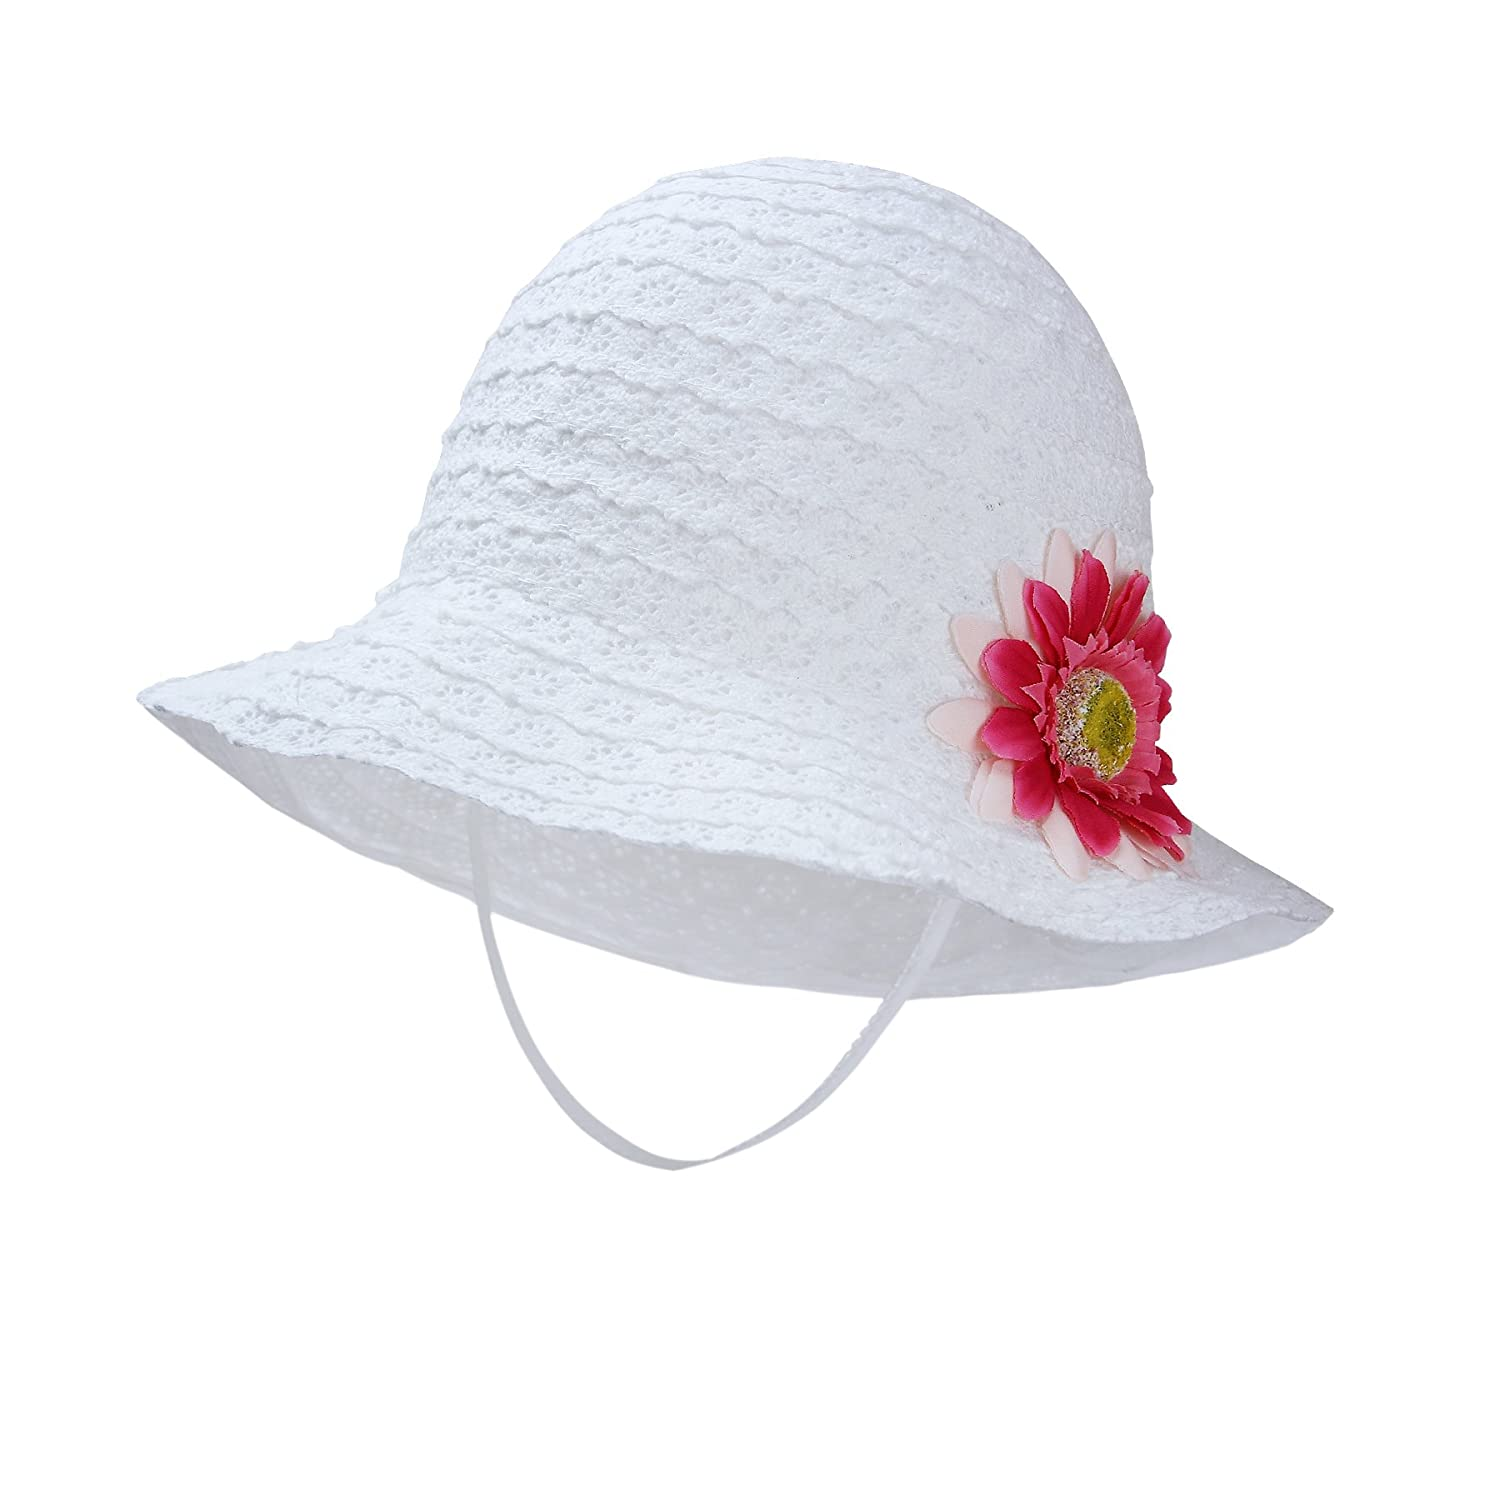 Vivo-biniya HAT ベビーガールズ B07B4R5MHT 52cm(Head circumference 20.4in)|White(flower) White(flower) 52cm(Head circumference 20.4in)